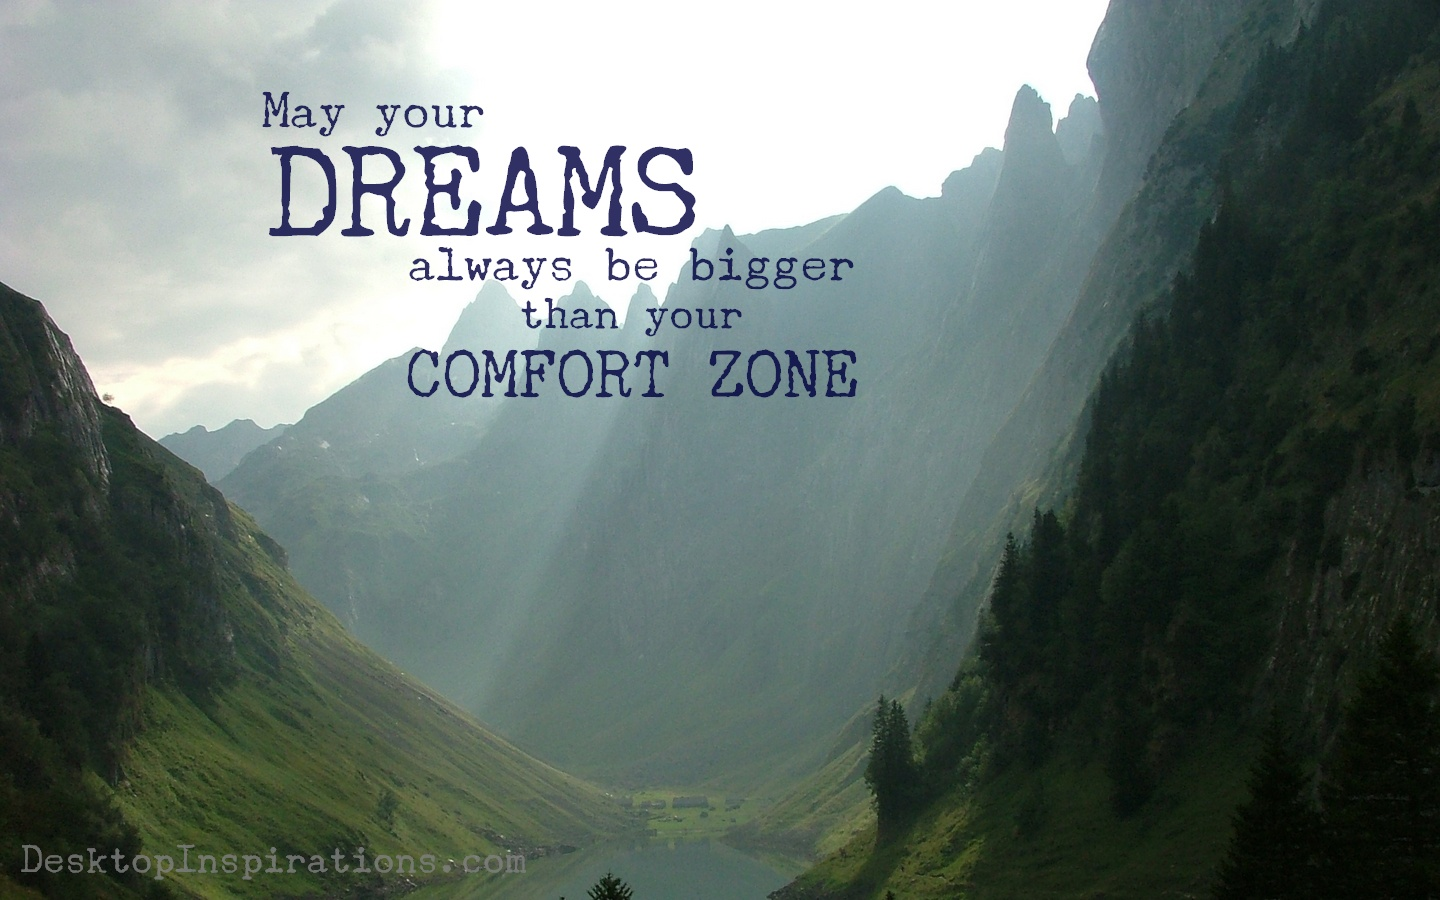 dream bigger than your comfort zone